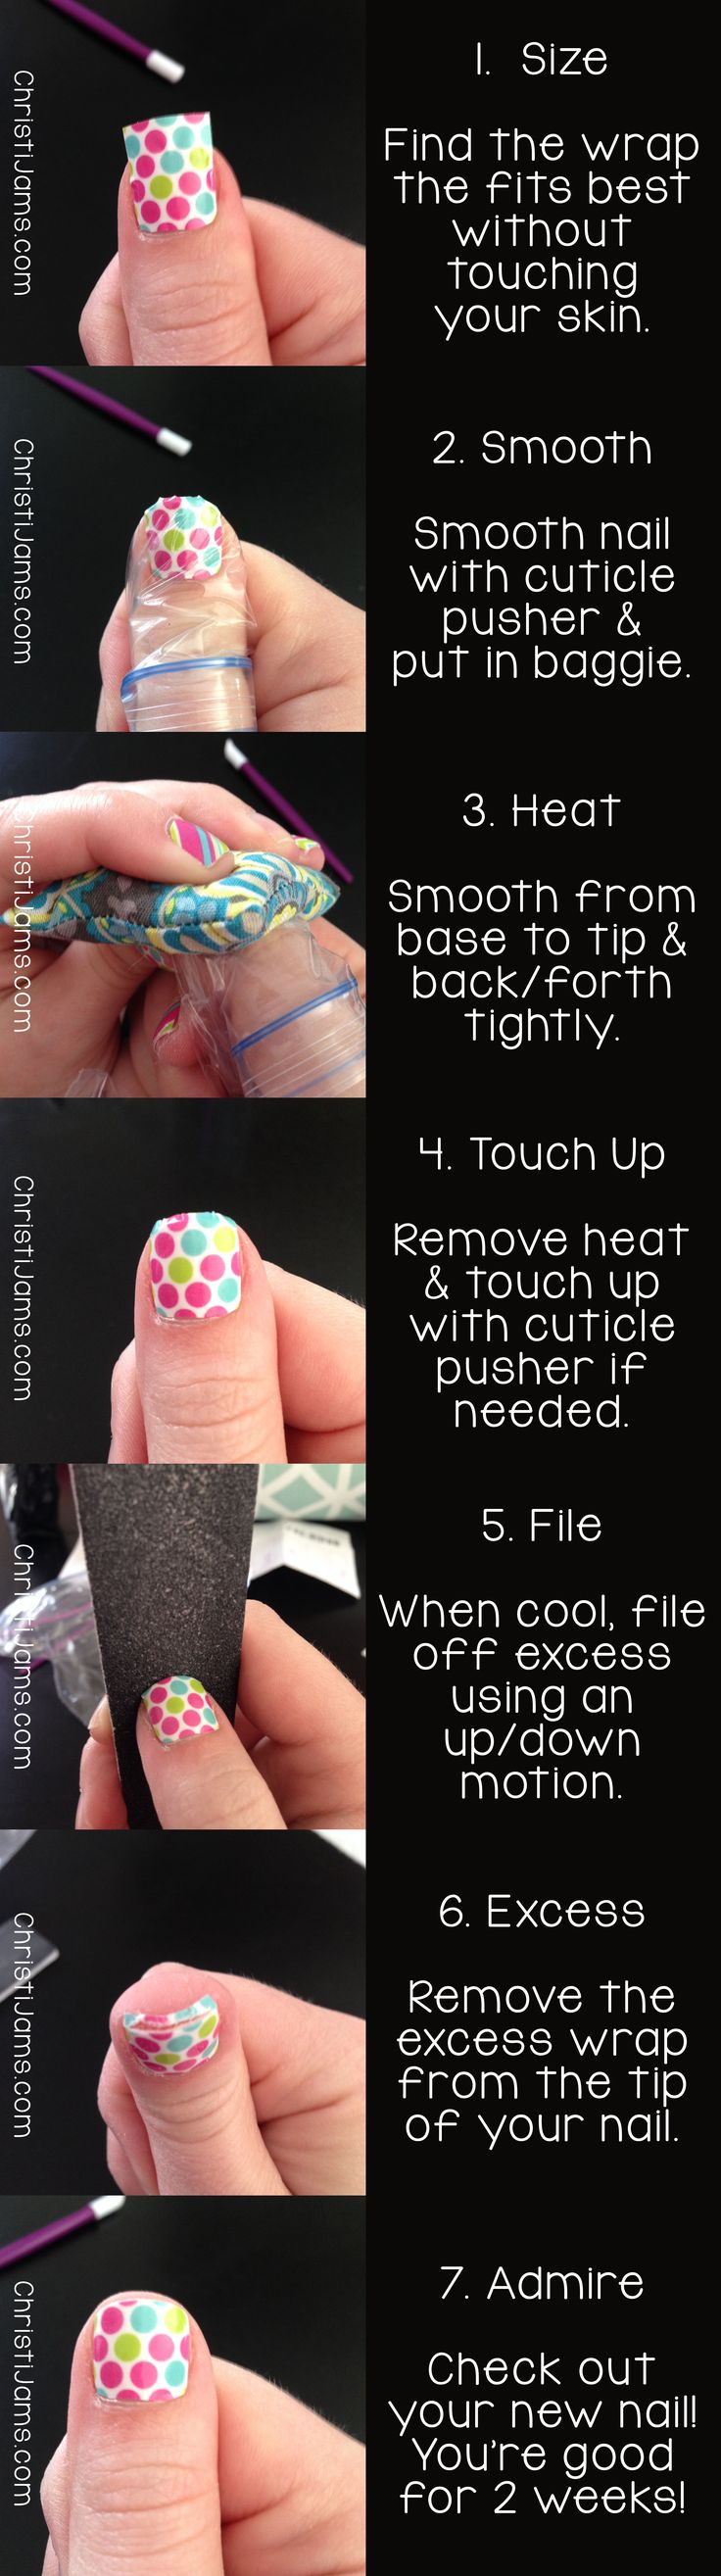 This is a great way to apply your wraps. The bag helps seal the tips for you who are very active. www.rayrays.jamberrynails.net https://www.facebook.com/RayraysHandcraftedGifts